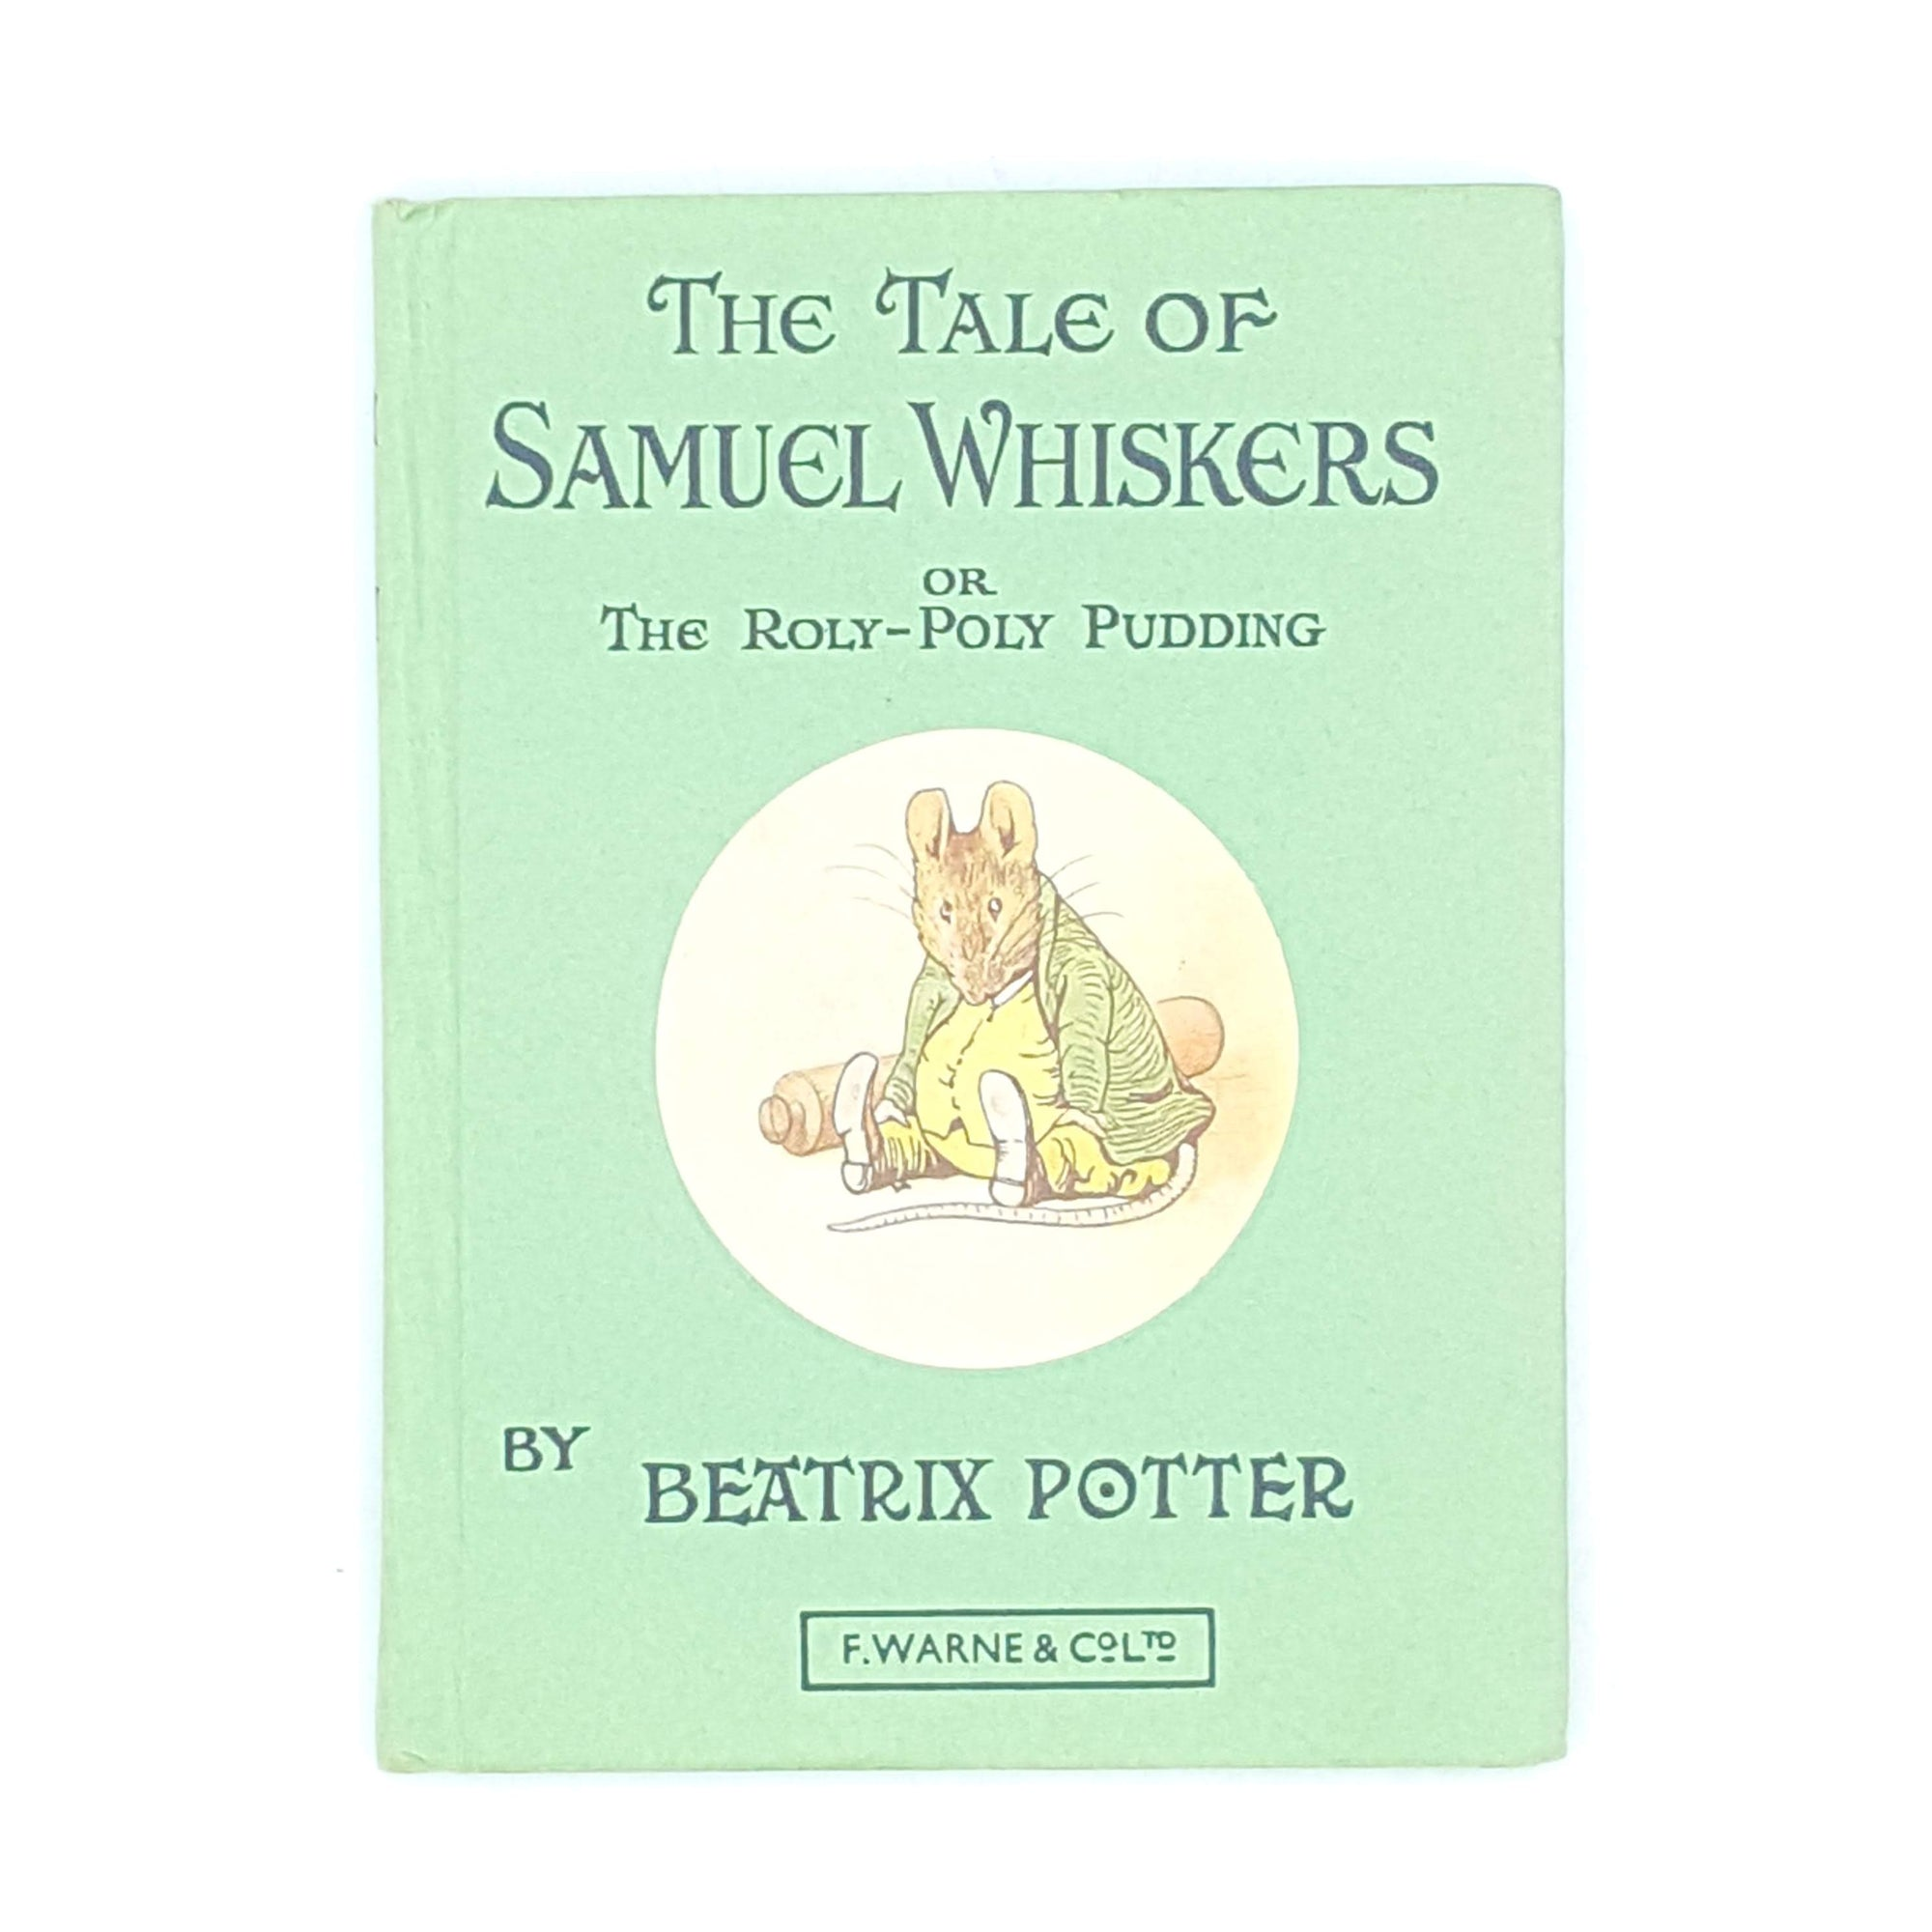 samuel-whiskers-beatrix-potter-classic-antique-books-country-house-library-green-vintage-childrens-decorative-patterned-old-thrift-